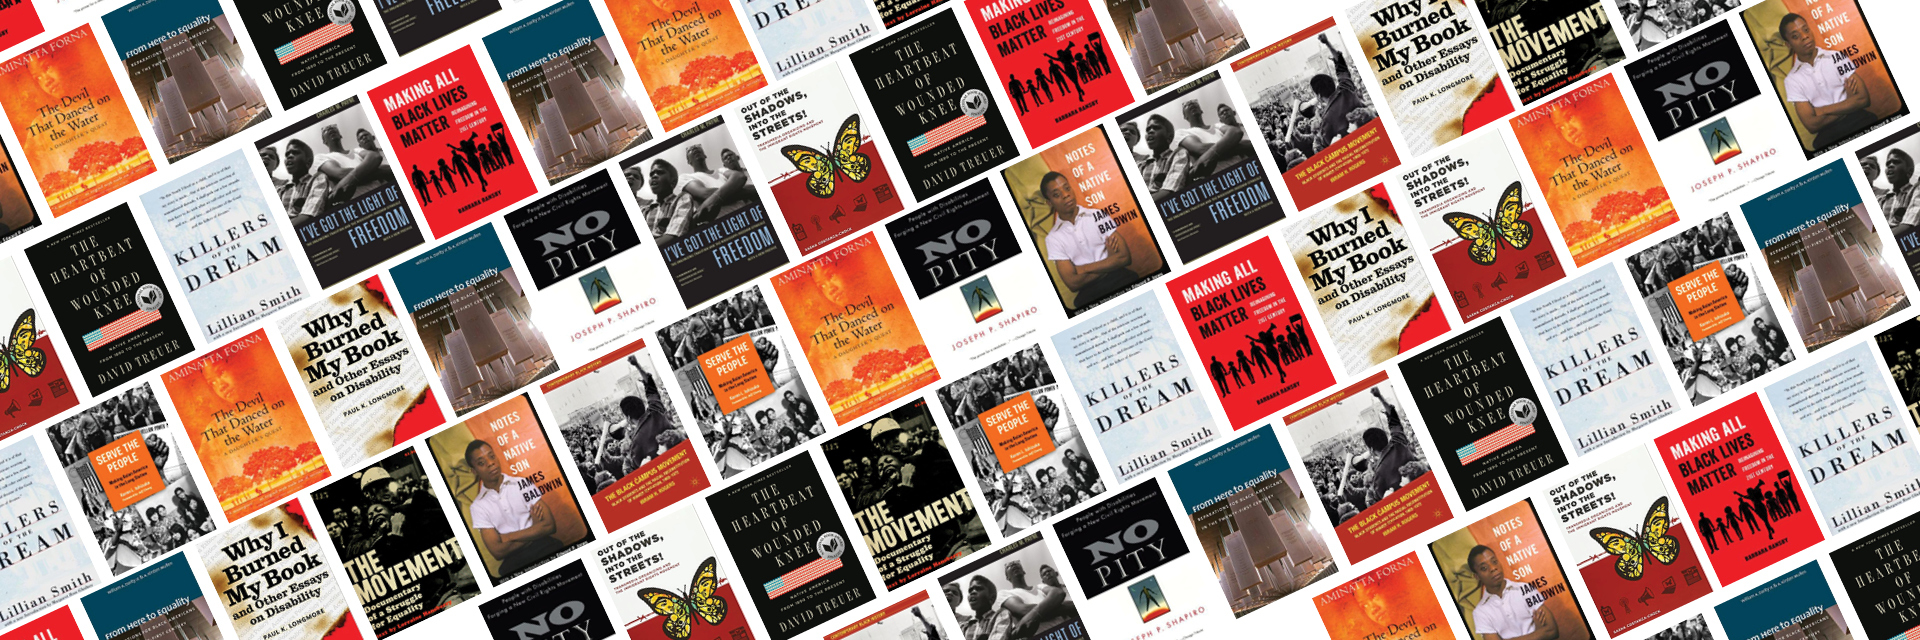 Books of Protest Reading List Book Covers